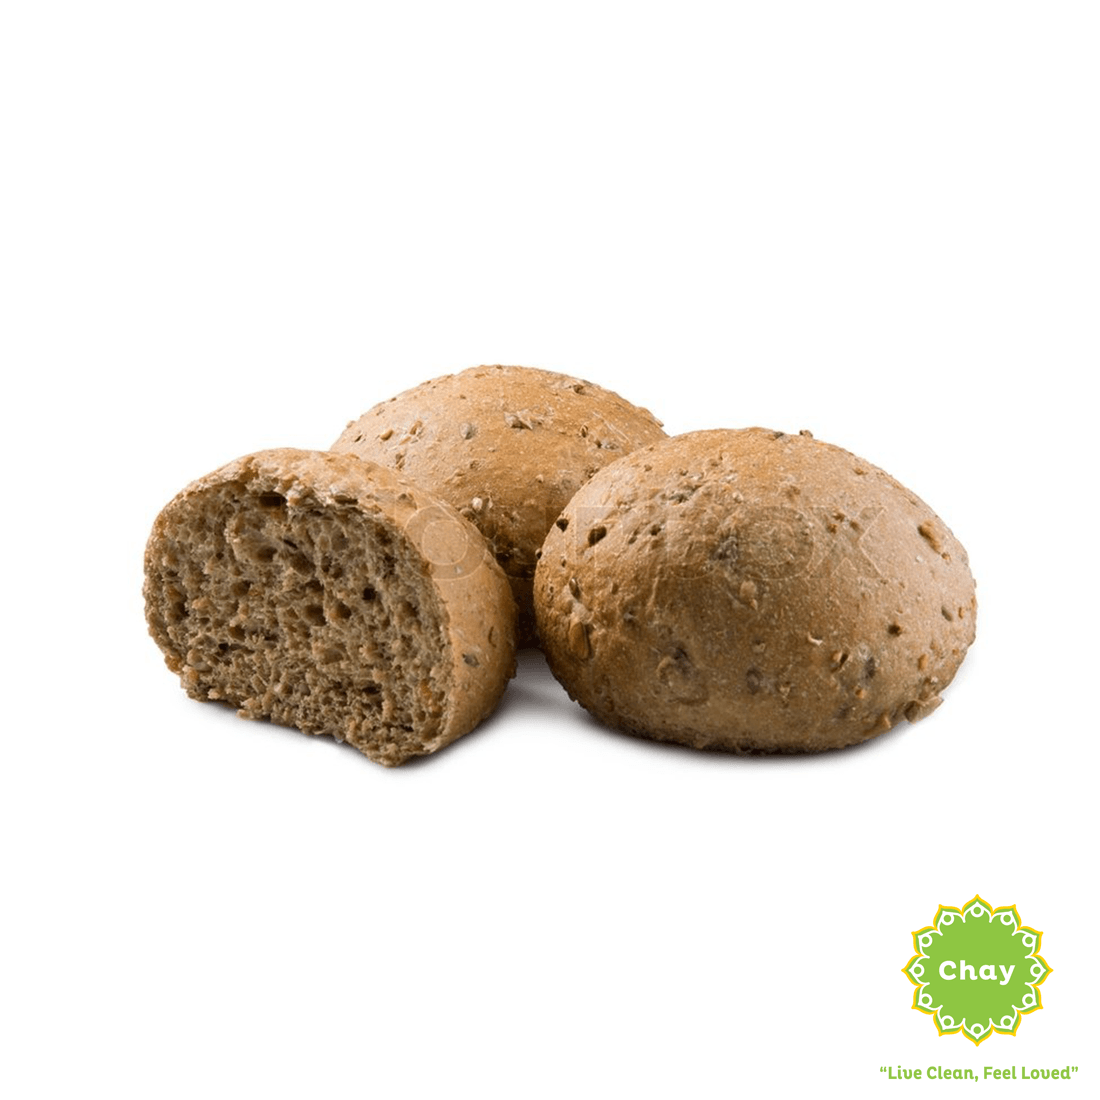 [BK003] 12 Grain Bread (V) en Harvest Baking Rolls (10 packs) (60g/ 1roll)